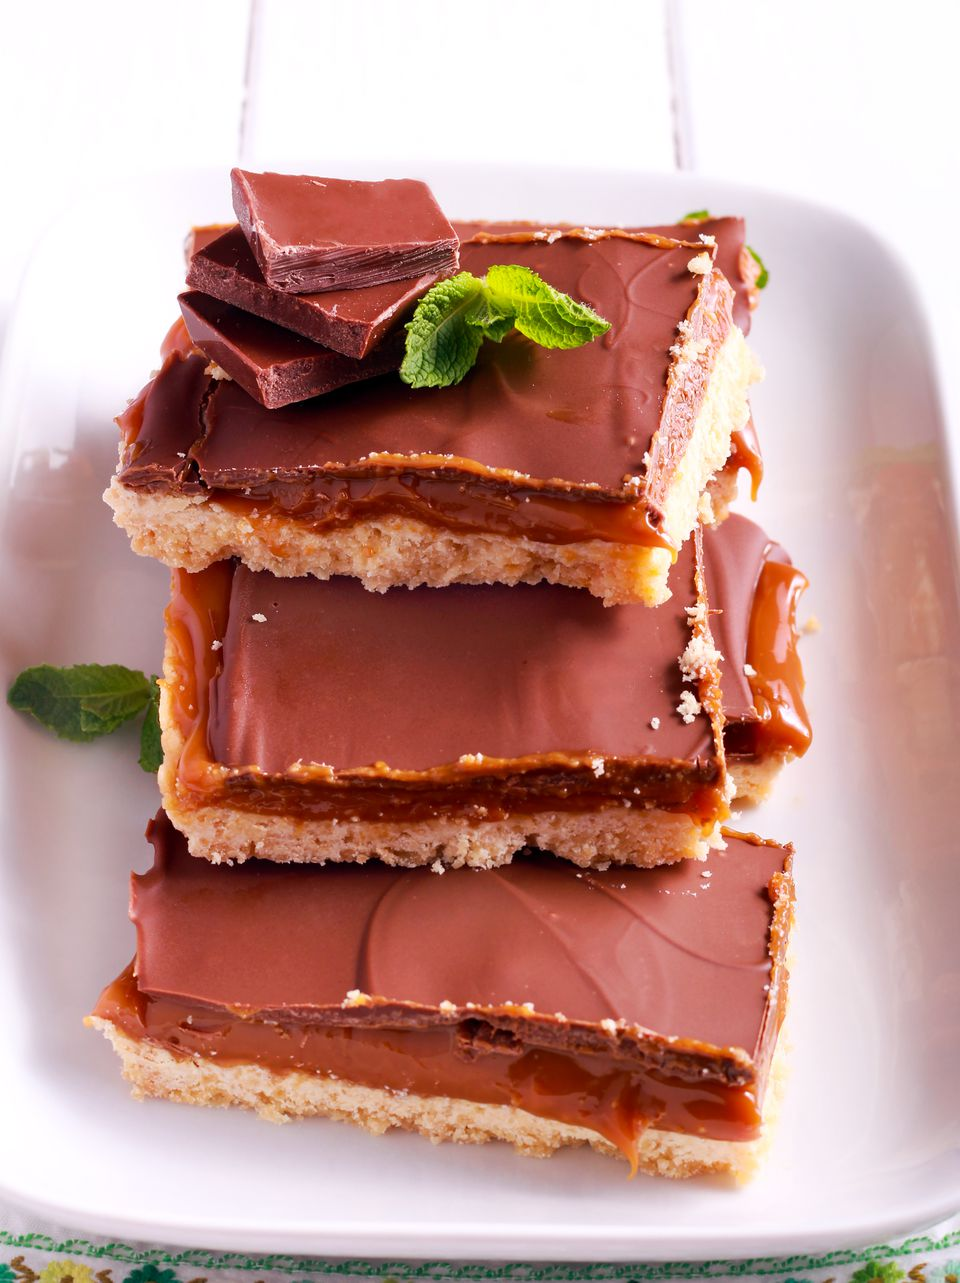 Millionaires' Shortbread - caramel and chocolate shortbread bars